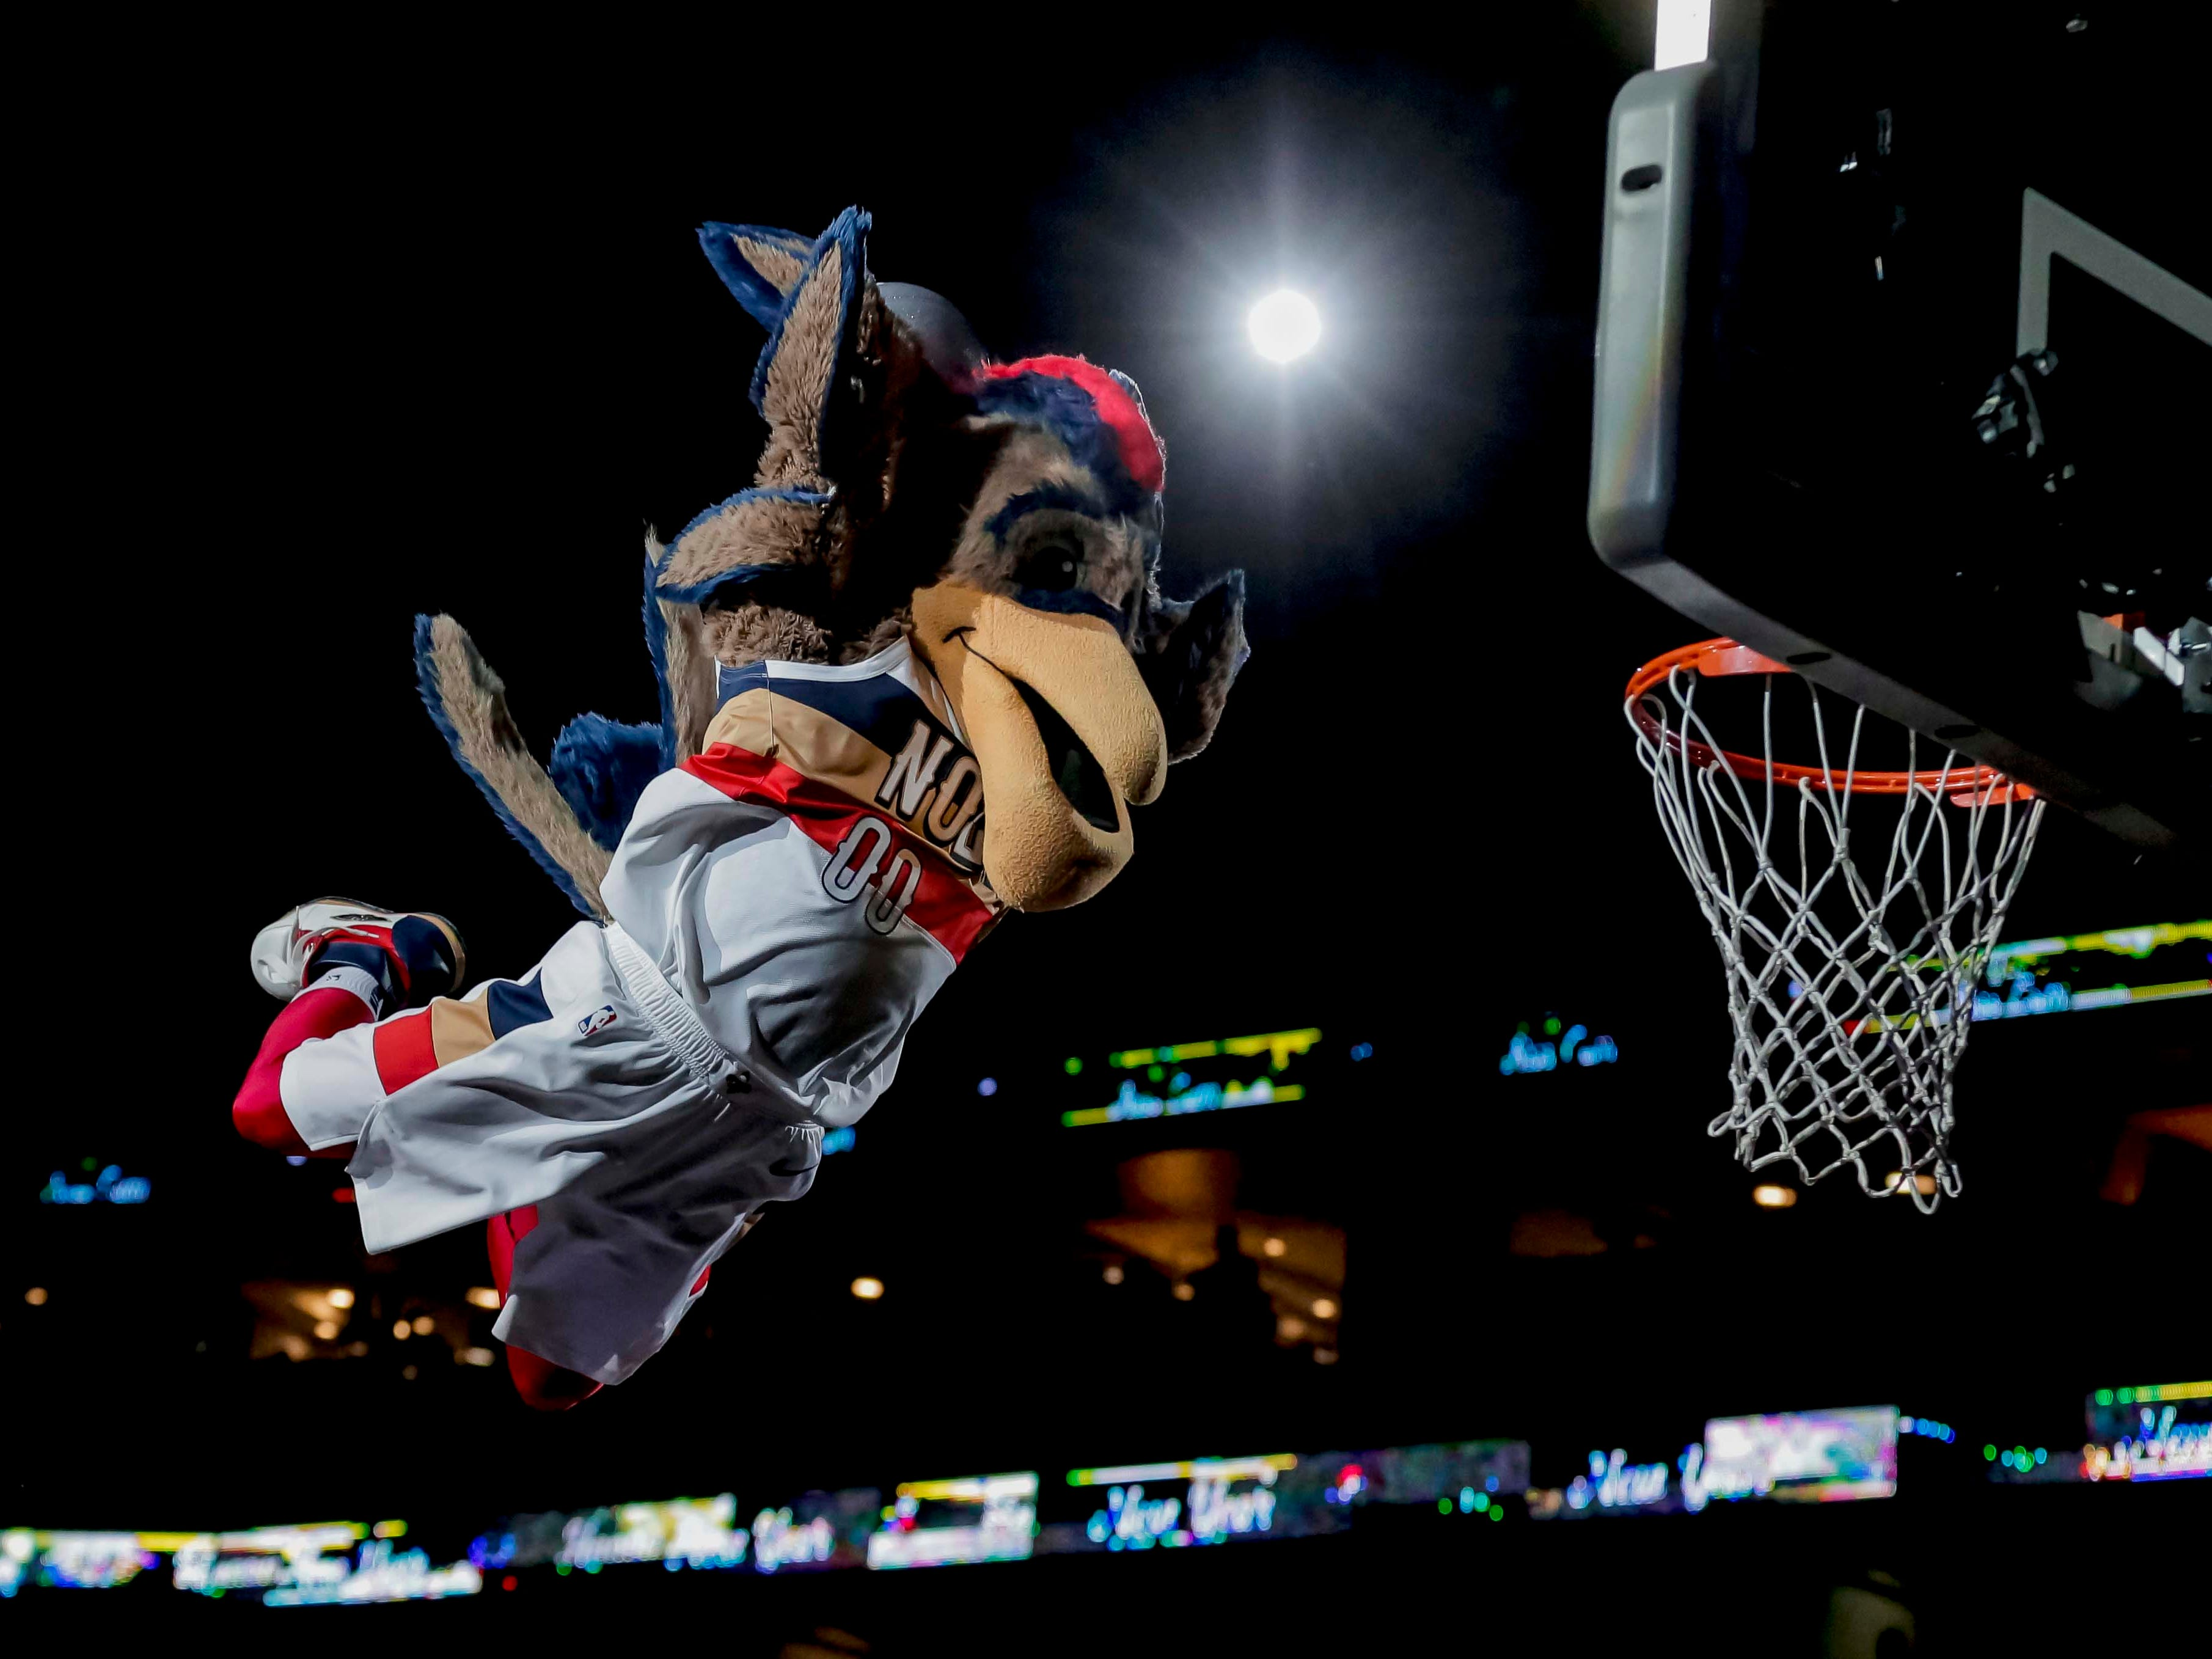 Dec. 31: New Orleans Pelicans mascot Pierre the Pelican performs a dunk in a timeout during the game against the Minnesota Timberwolves at the Smoothie King Center.